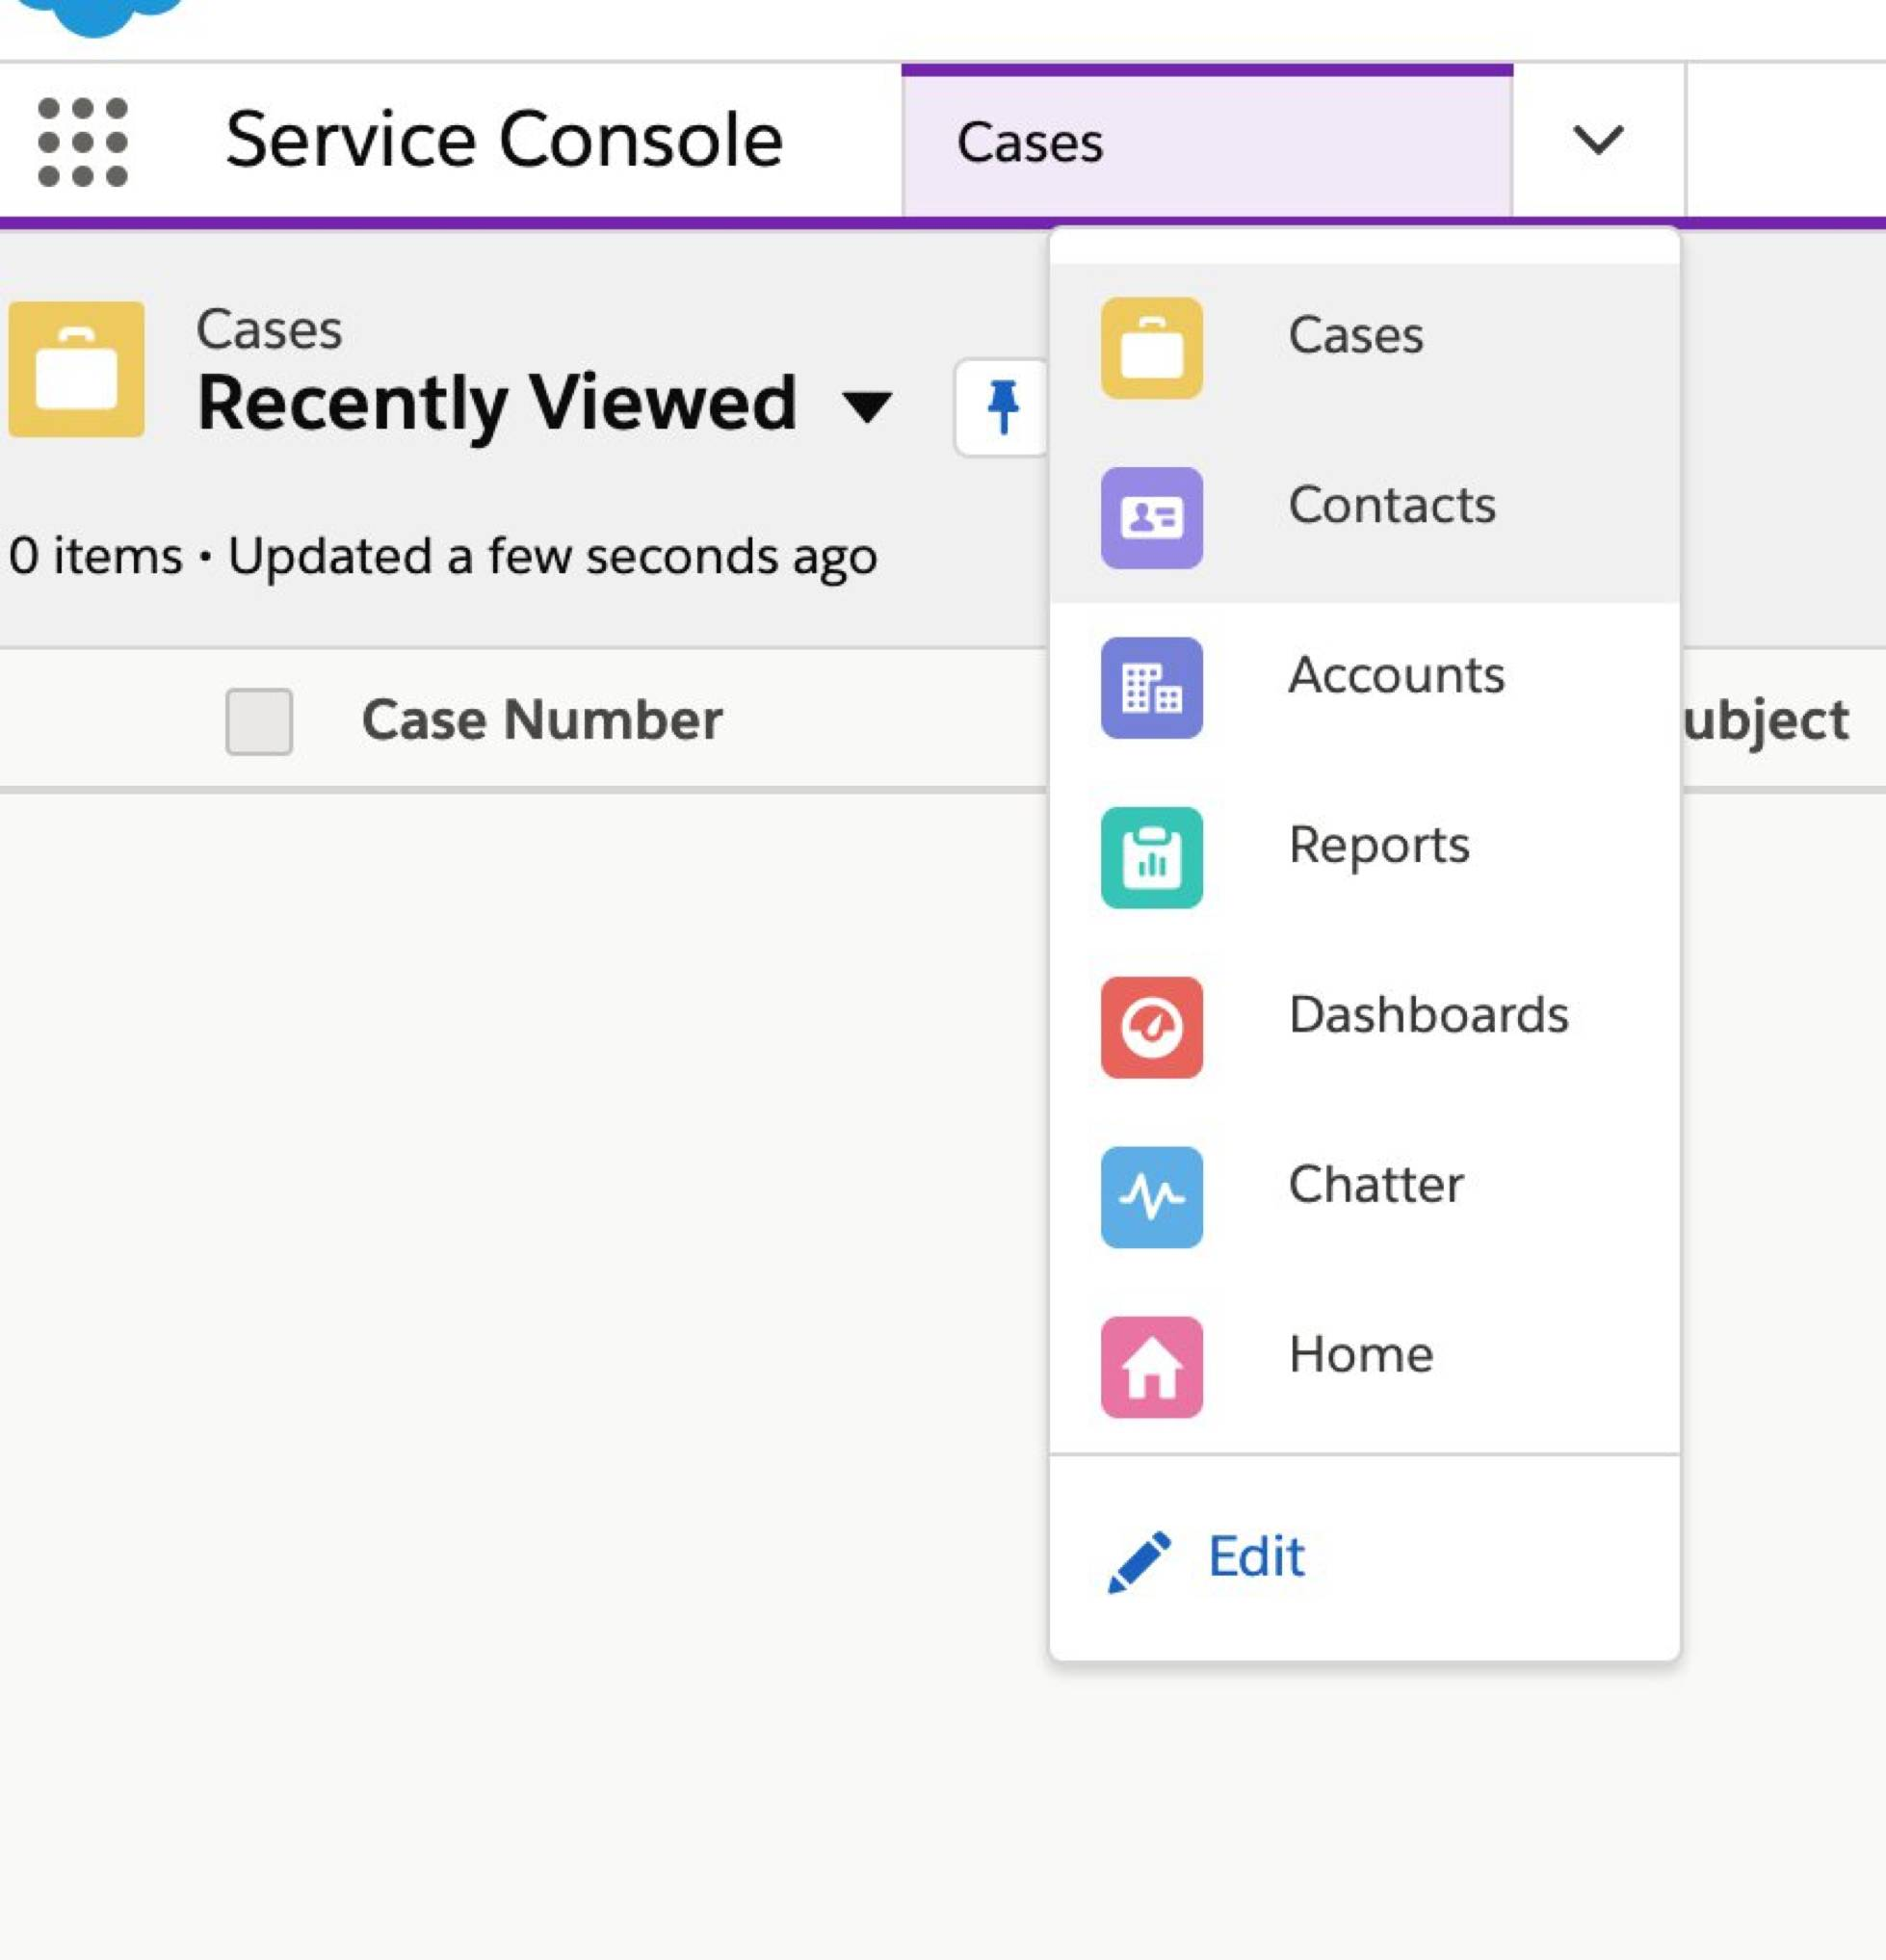 The navigation dropdown open in Service Console